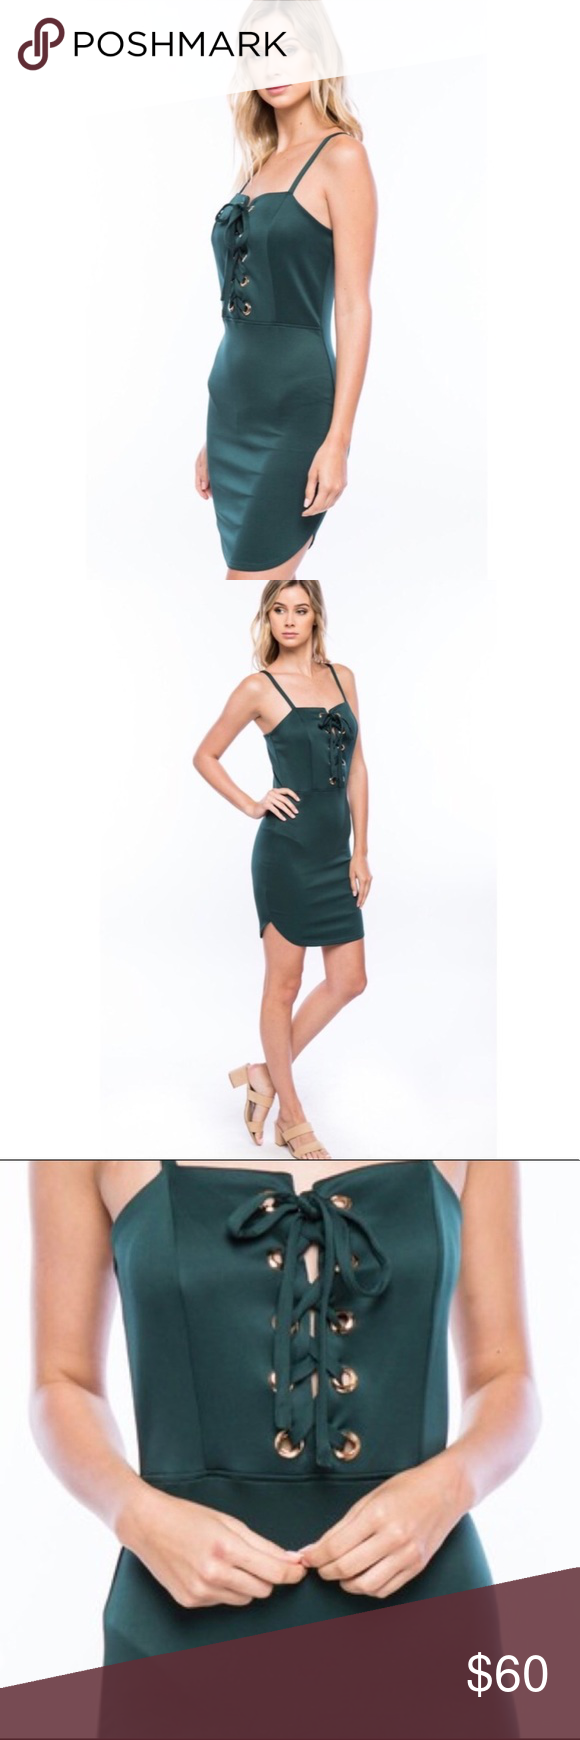 Green lace up dress  New Bodycon LaceUp Front Grommet Dress Boutique